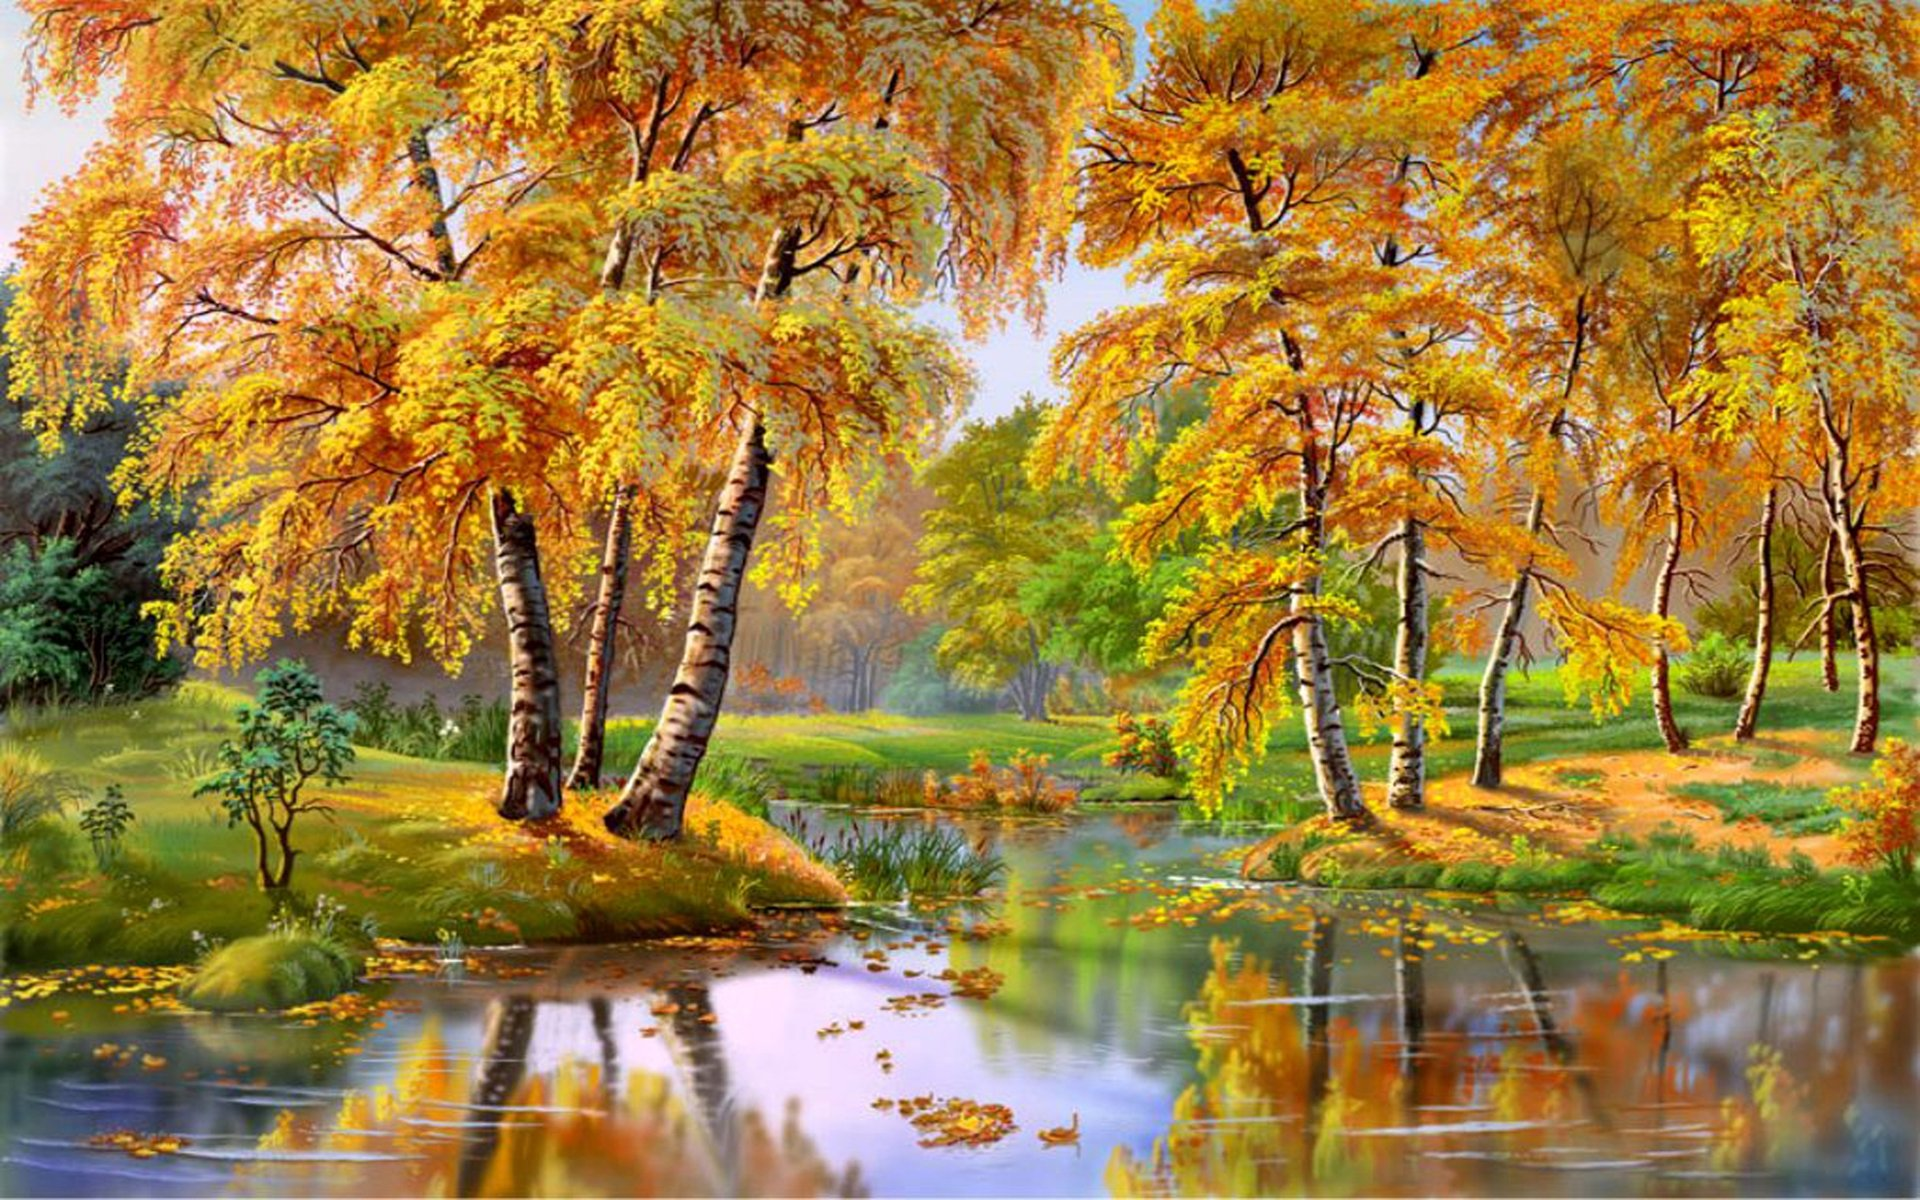 Happy Fall Wallpaper Iphone Autumn Landscape Painting Full Hd Wallpaper And Background